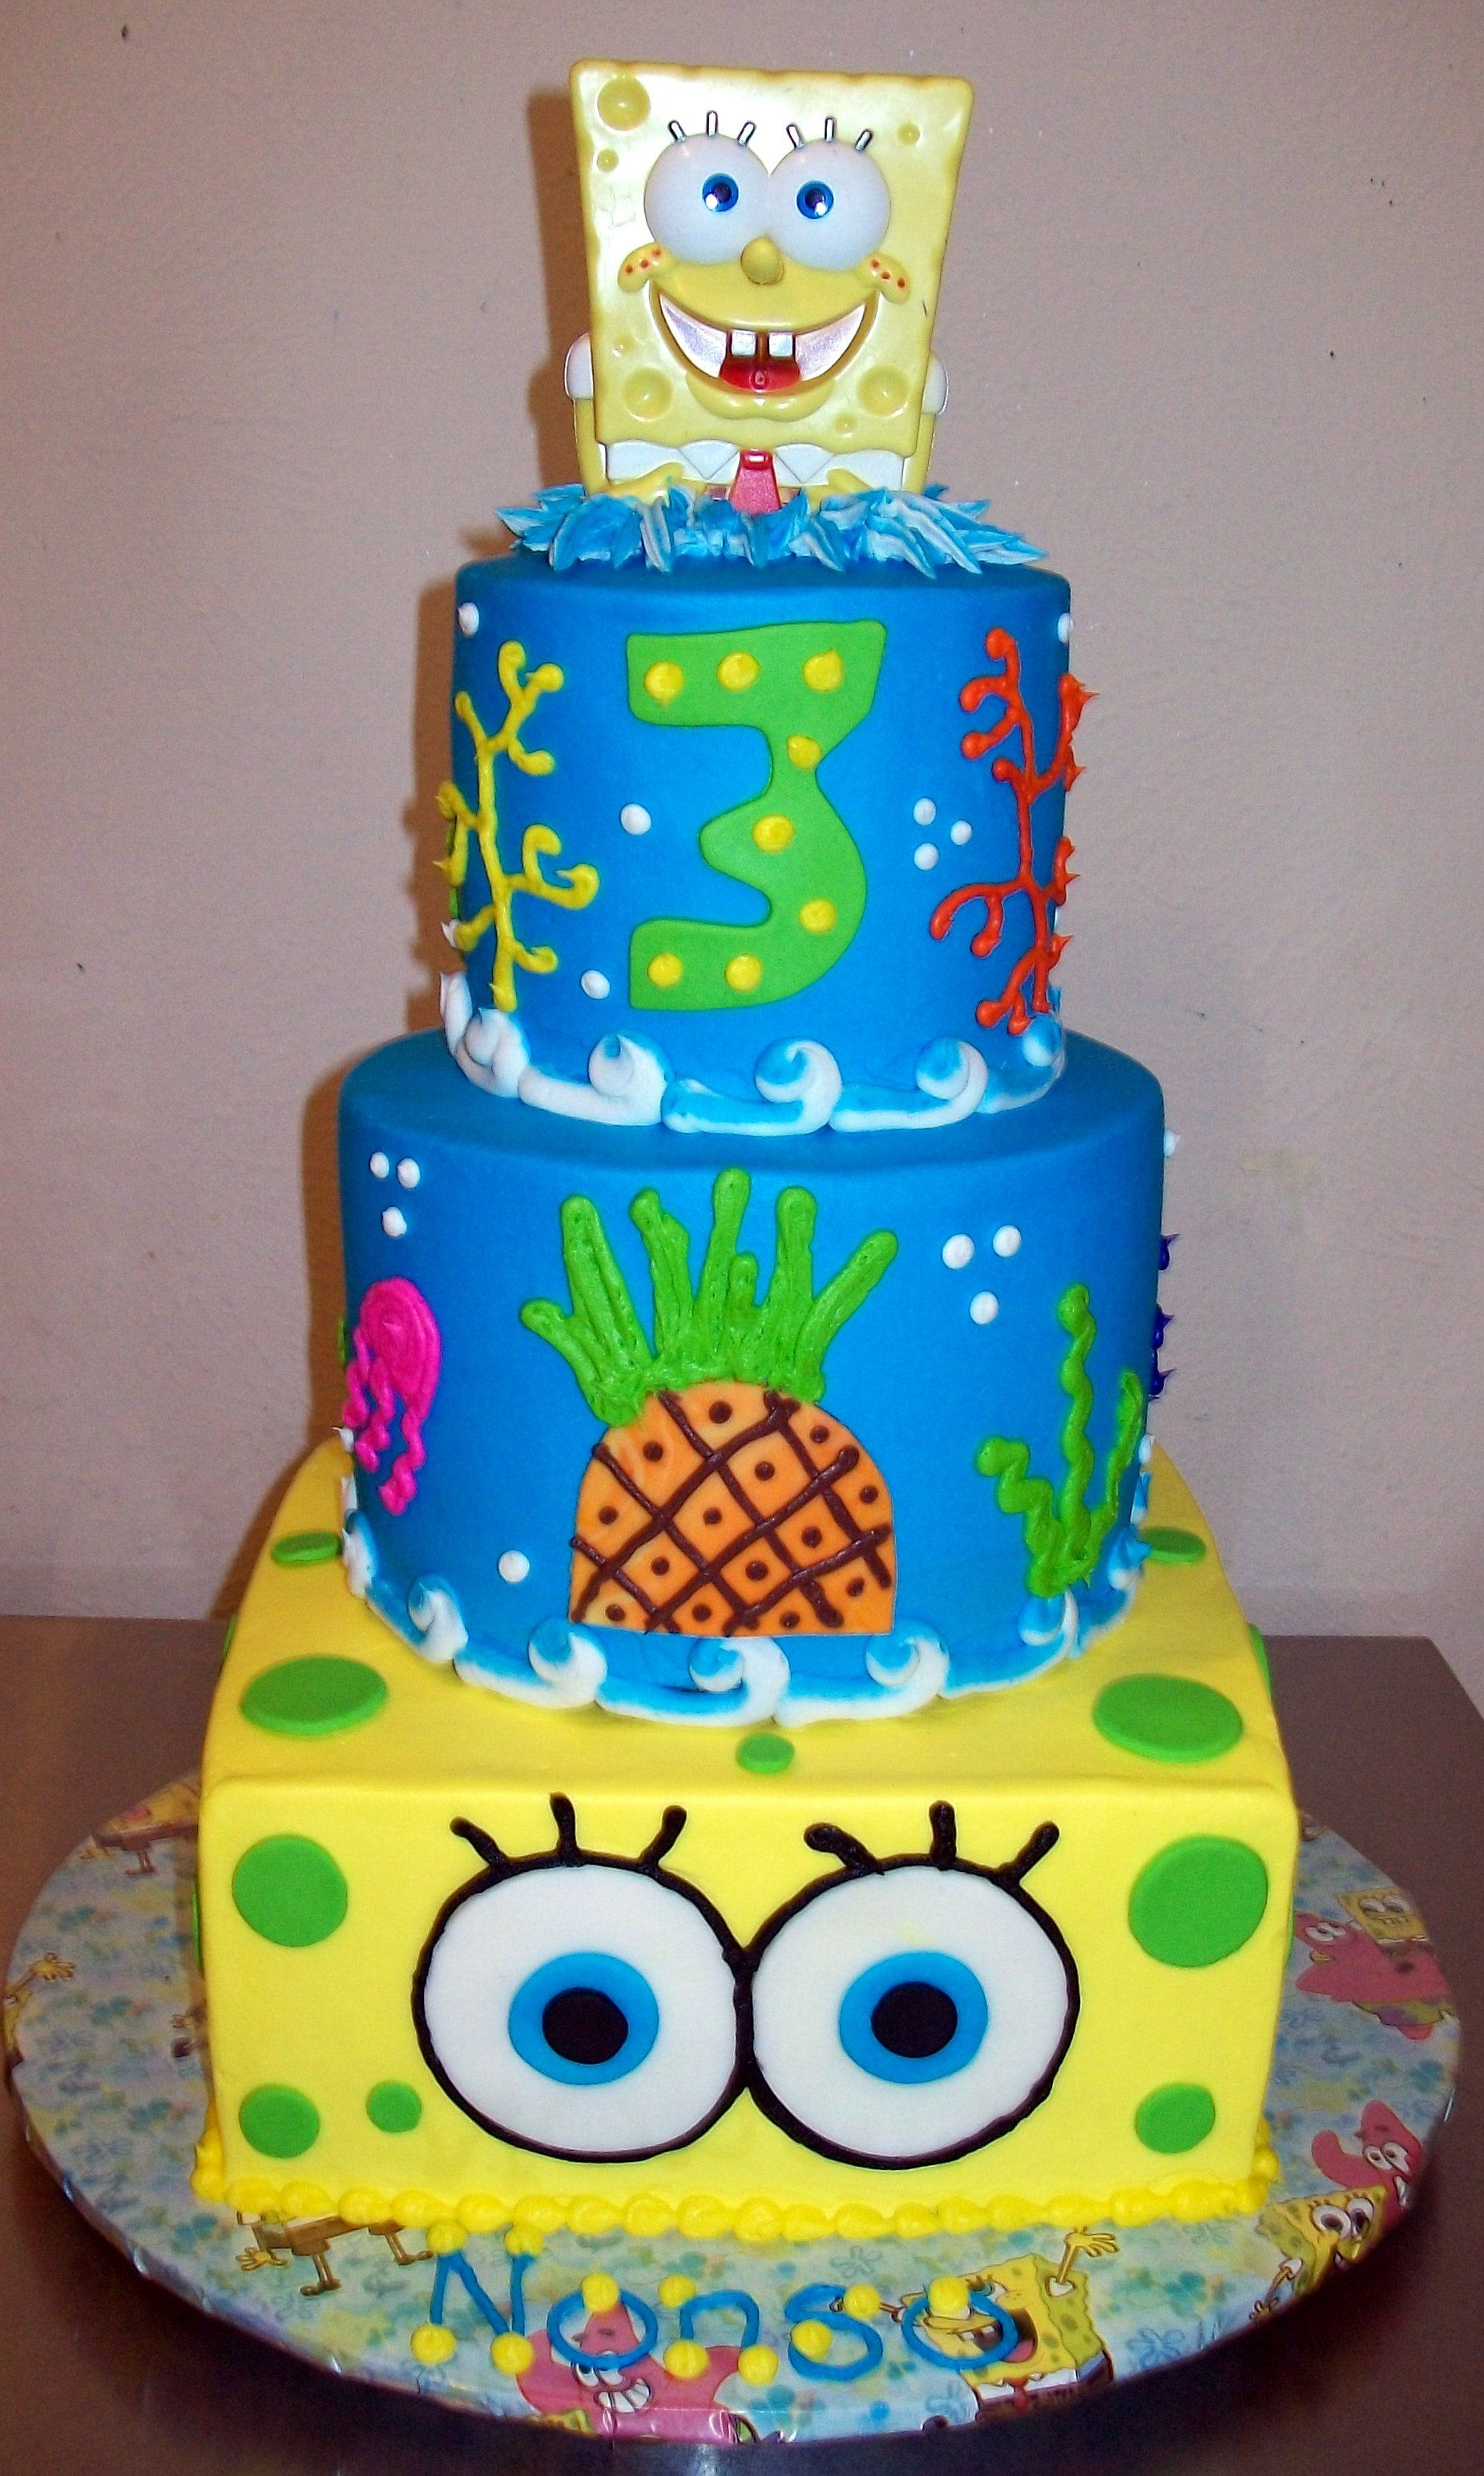 Another Cute Spongebob Cake This For A Three Year Old